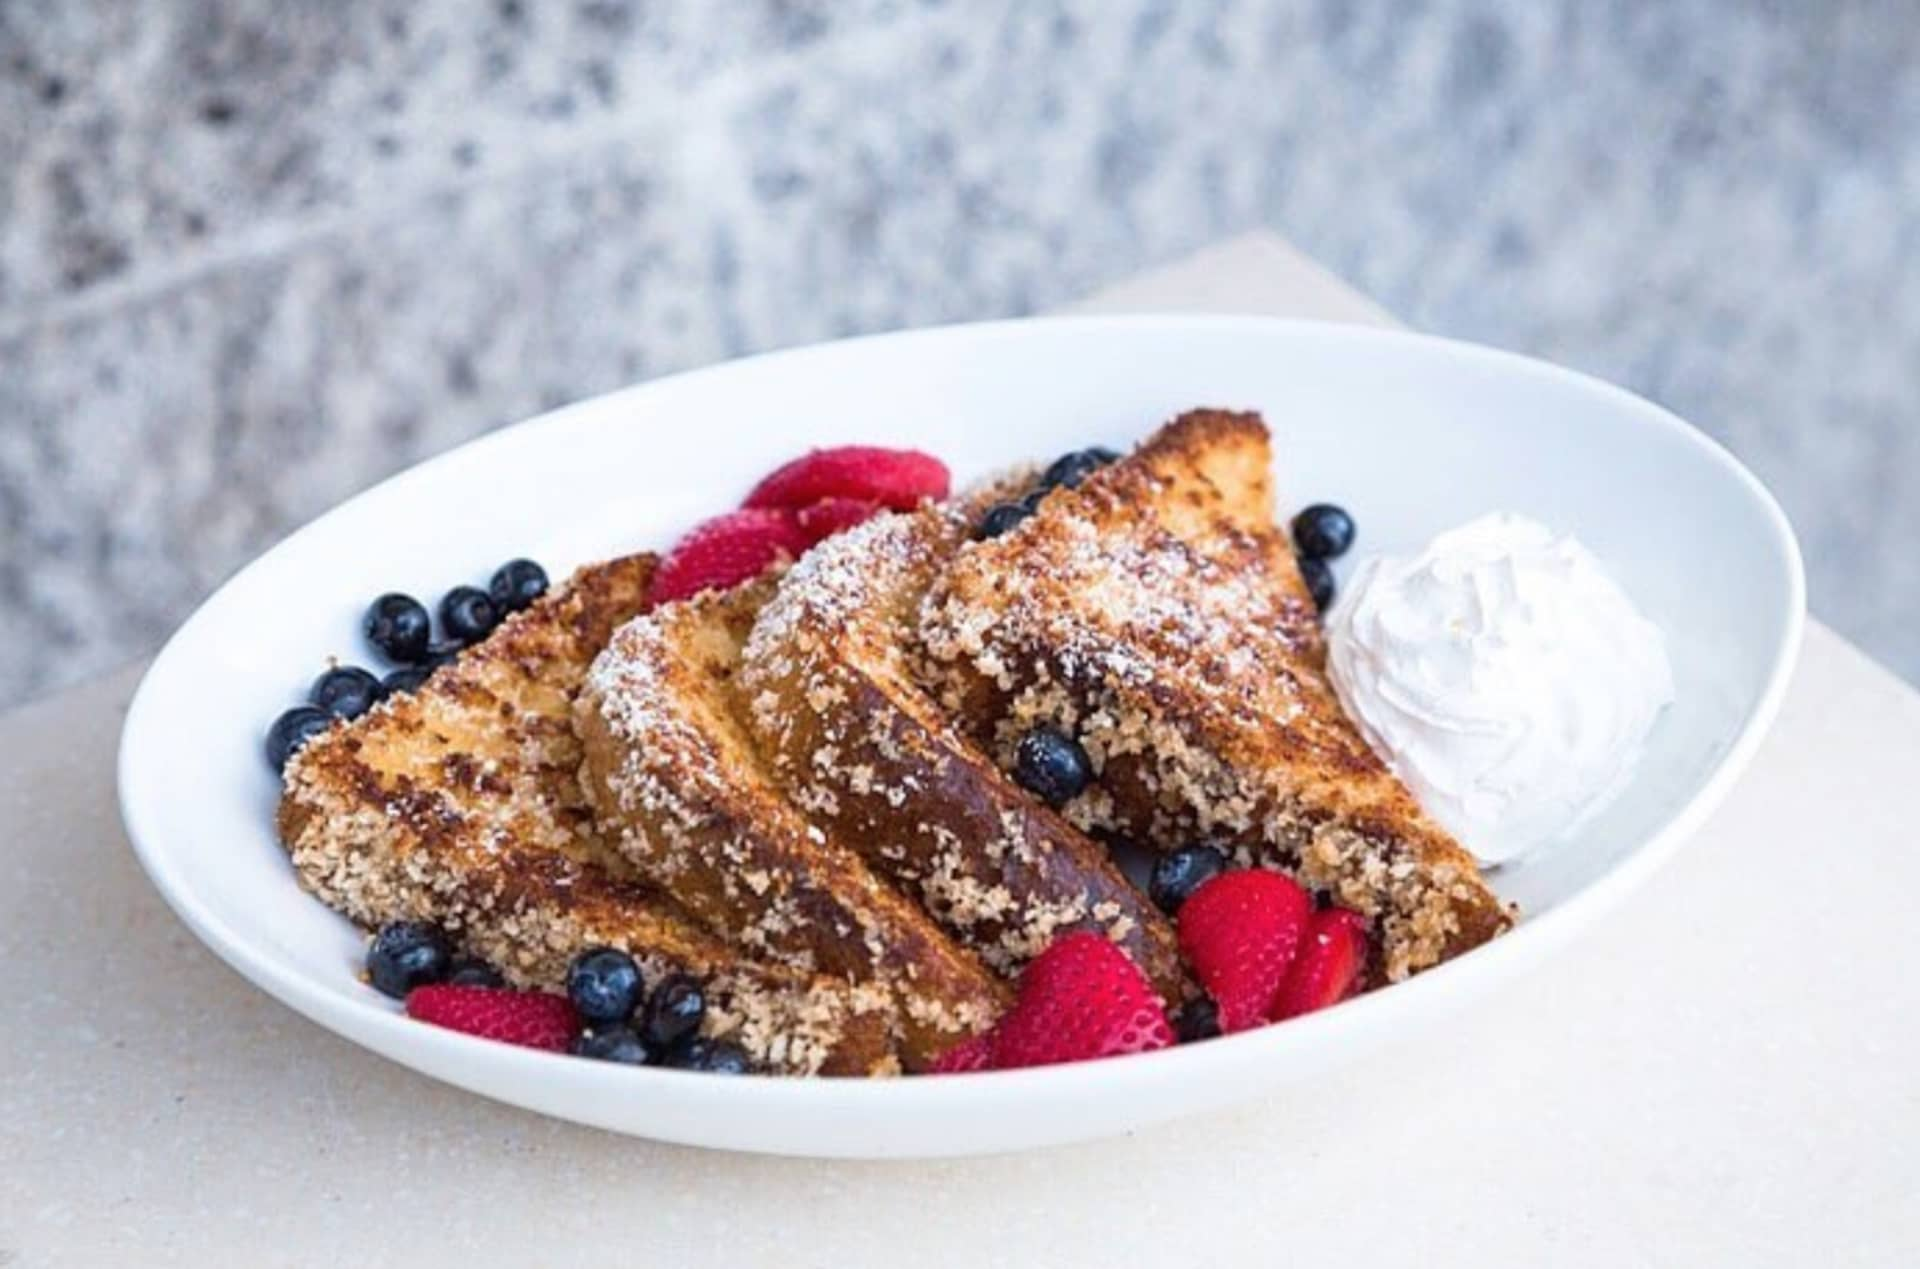 PANKO CRUSTED FRENCH TOAST